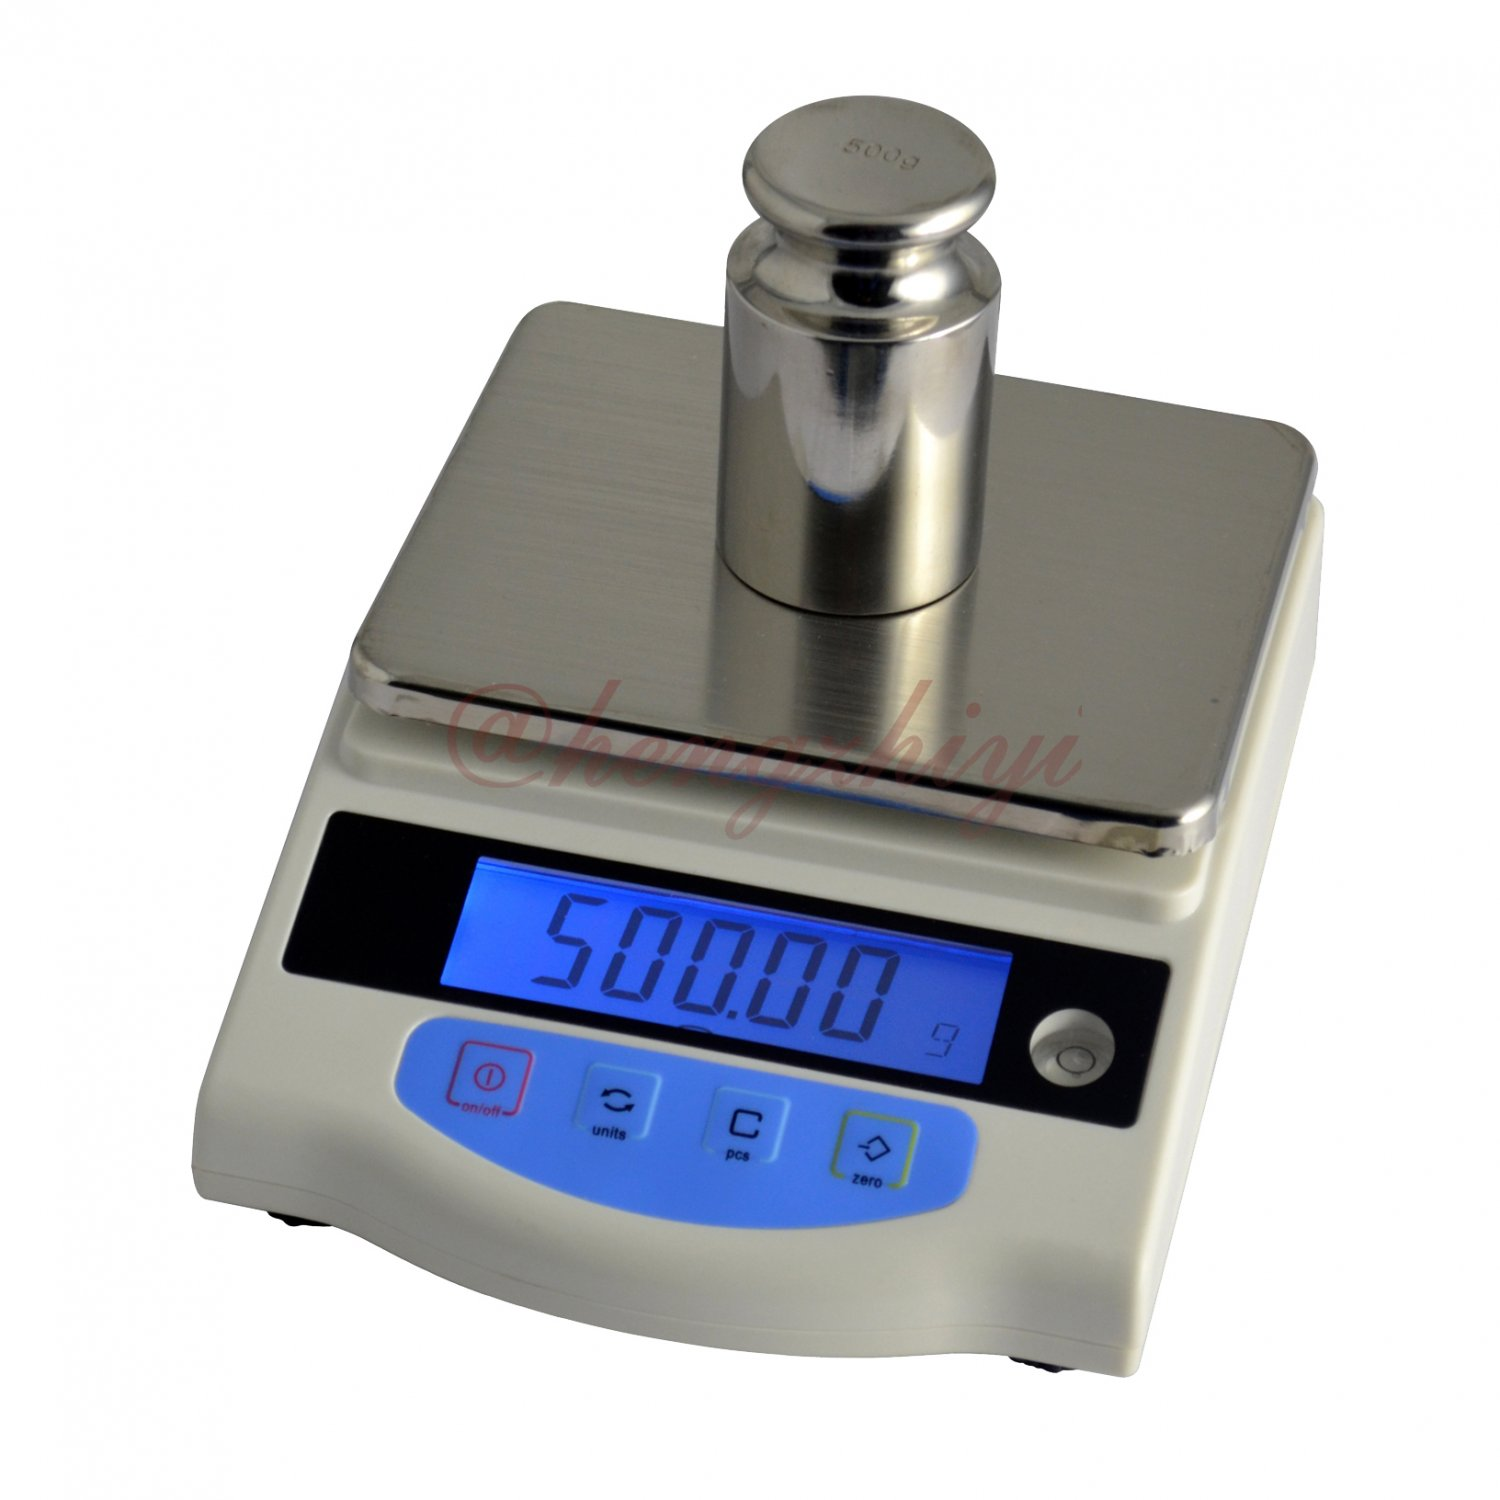 1000g x 0.01g Digital Jewelry Silver Coin Scale Balance w Germany Sensor +Counting, Free Shipping